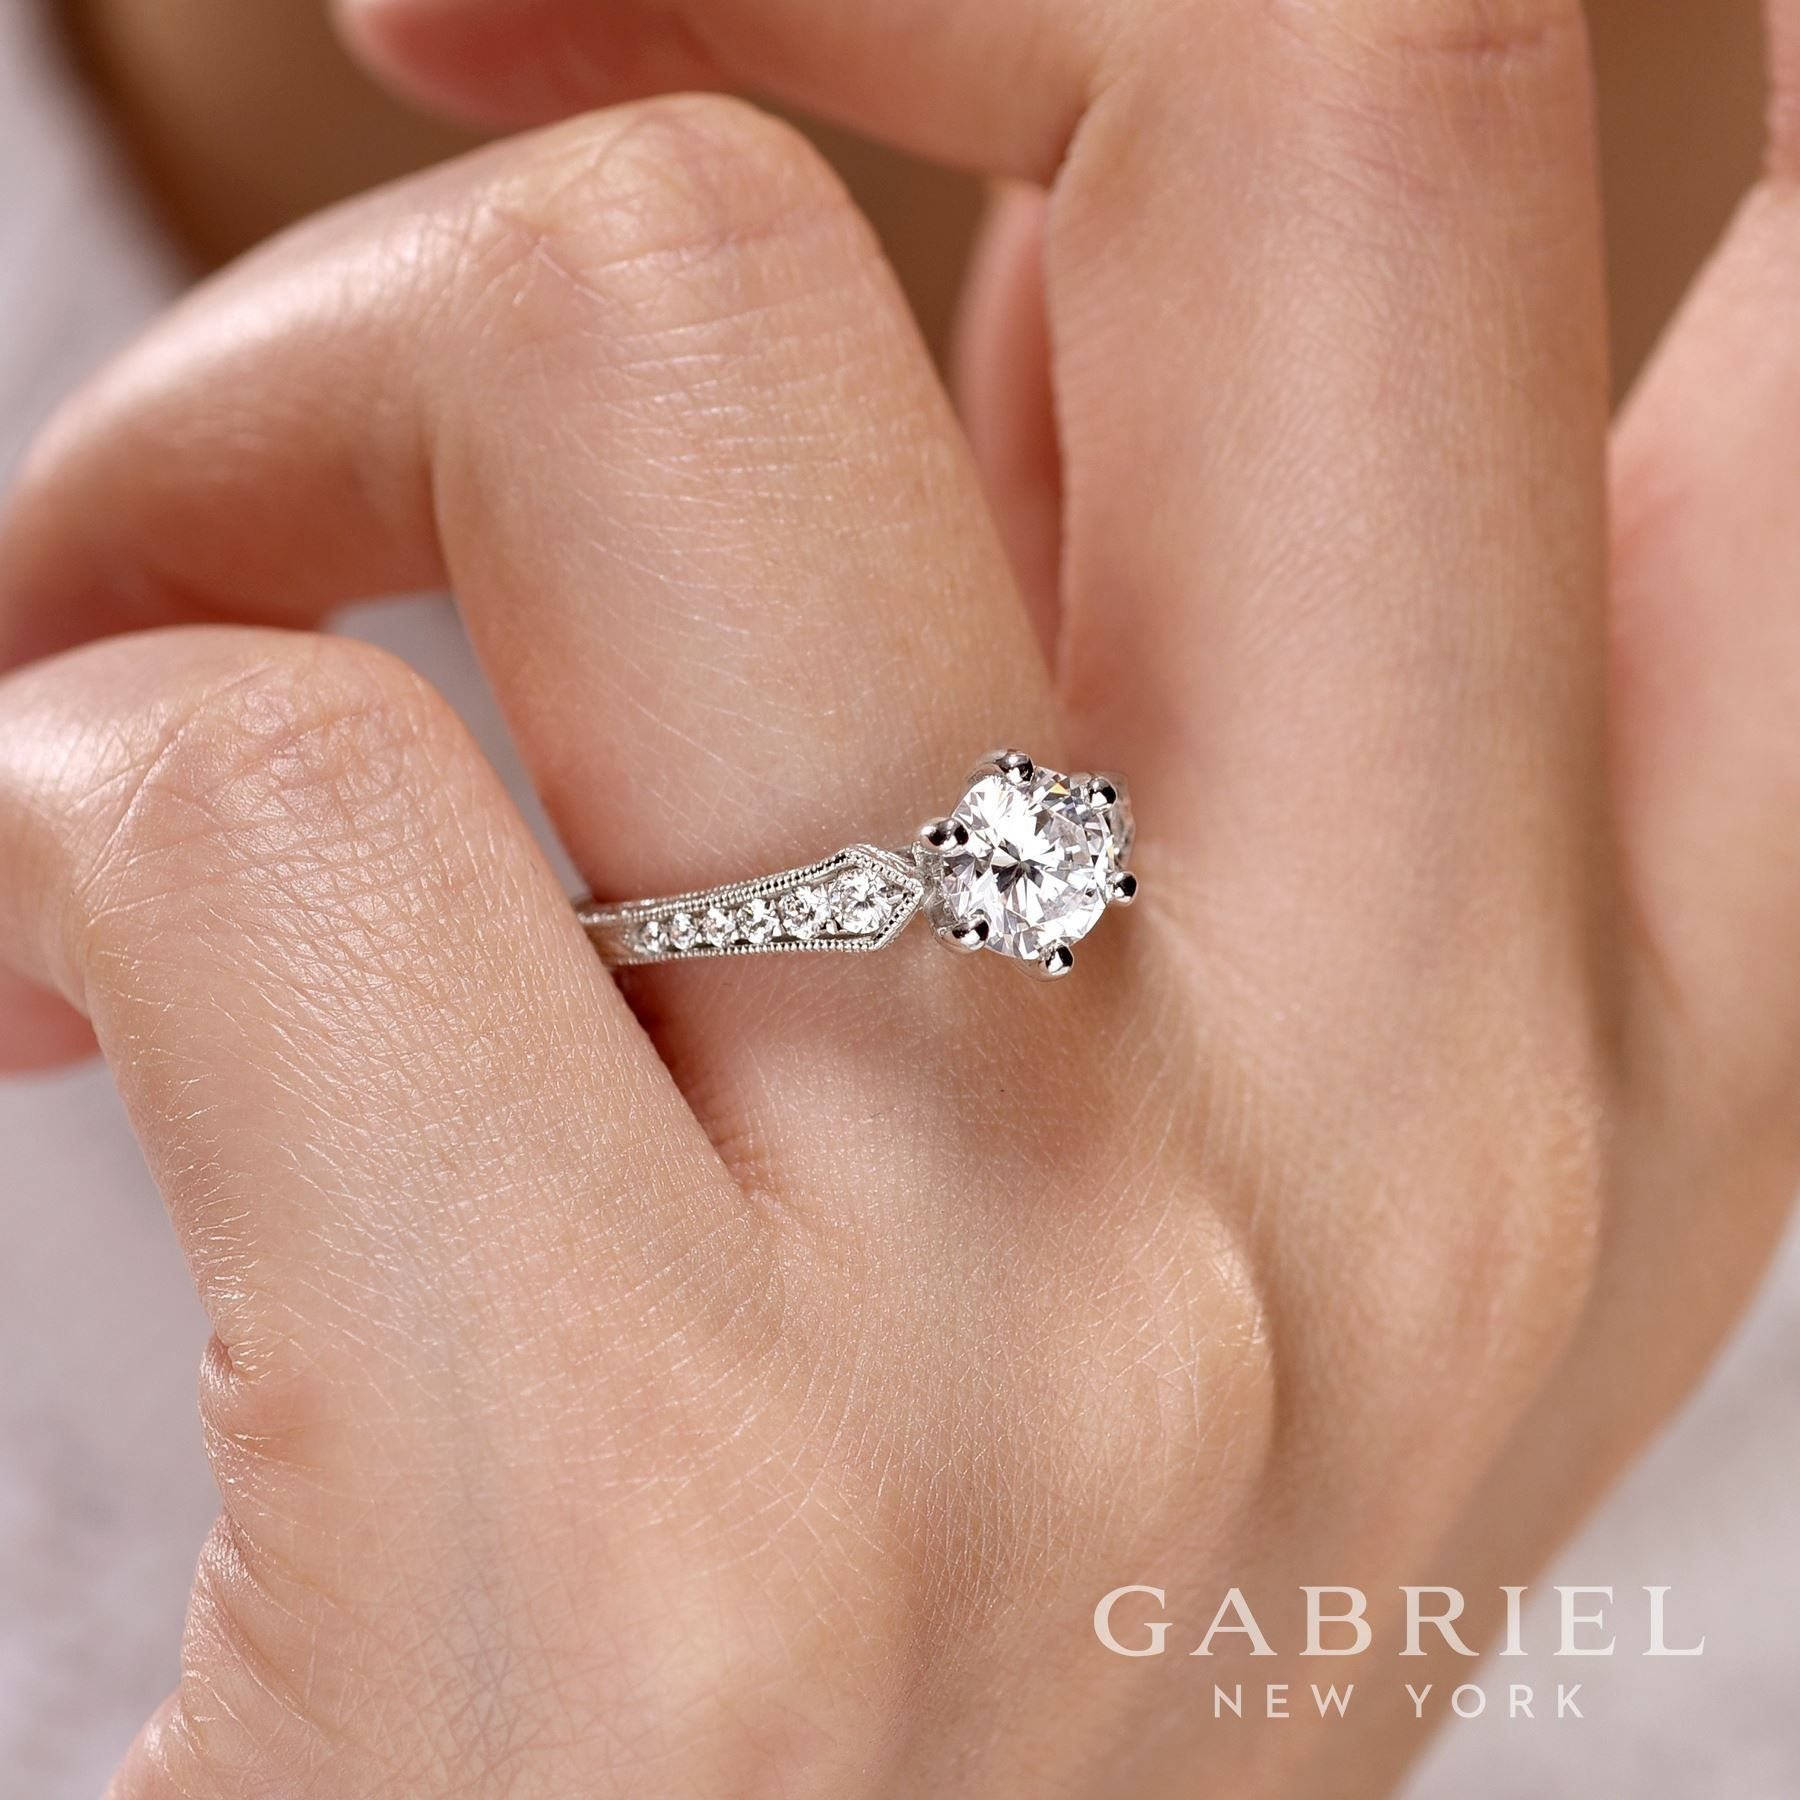 For a once in a lifetime love... Propose with Gabriel & Co. from ...